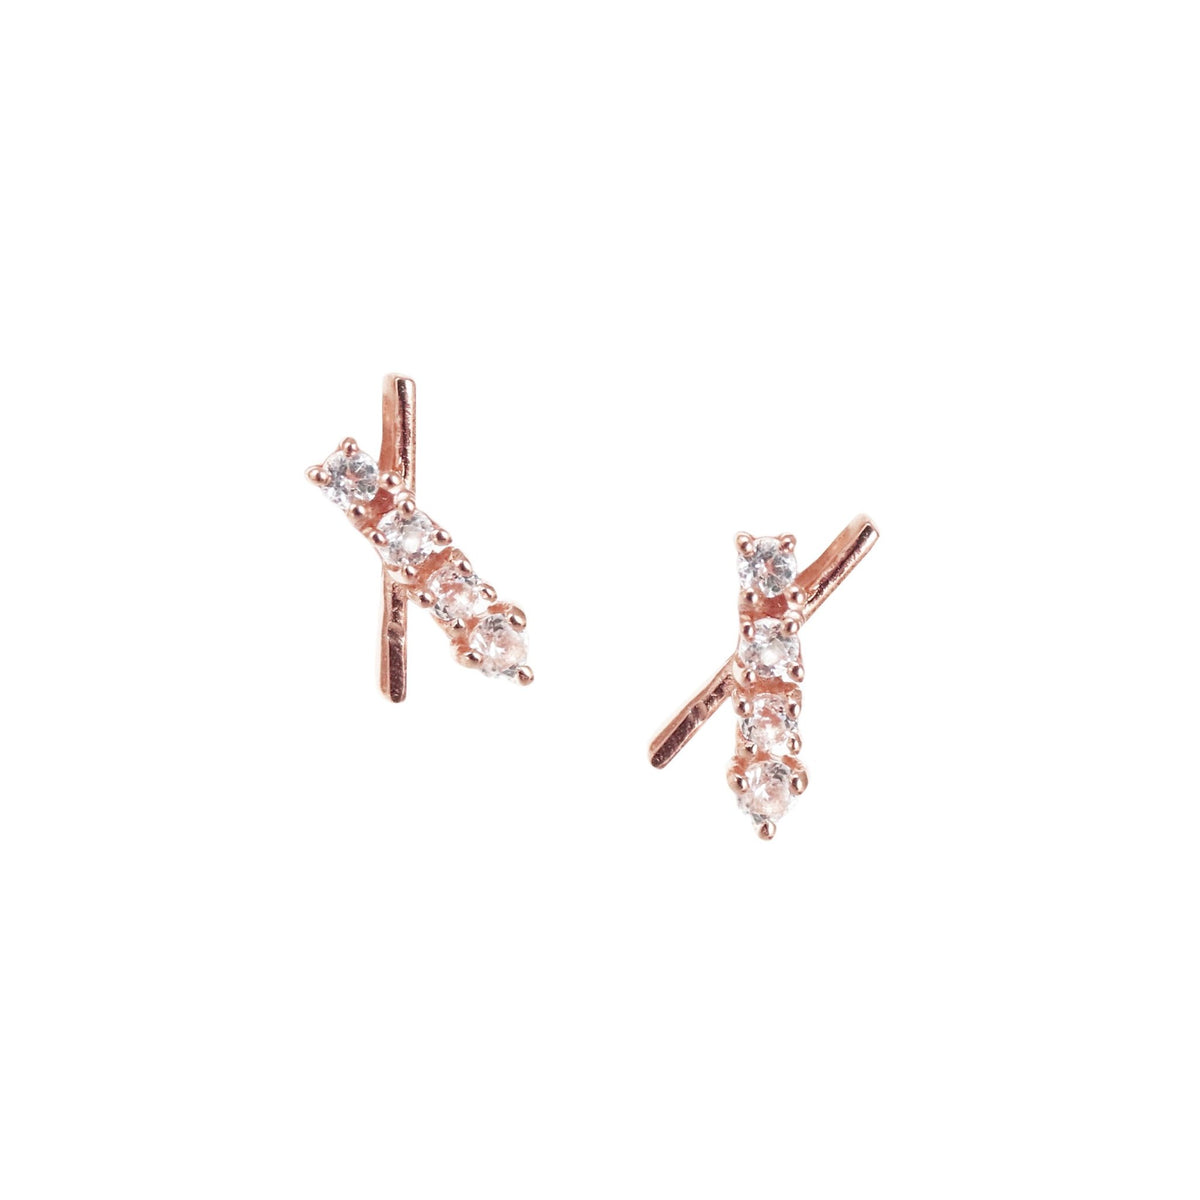 TINY DREAM STARDUST STUDS - CUBIC ZIRCONIA & ROSE GOLD - SO PRETTY CARA COTTER